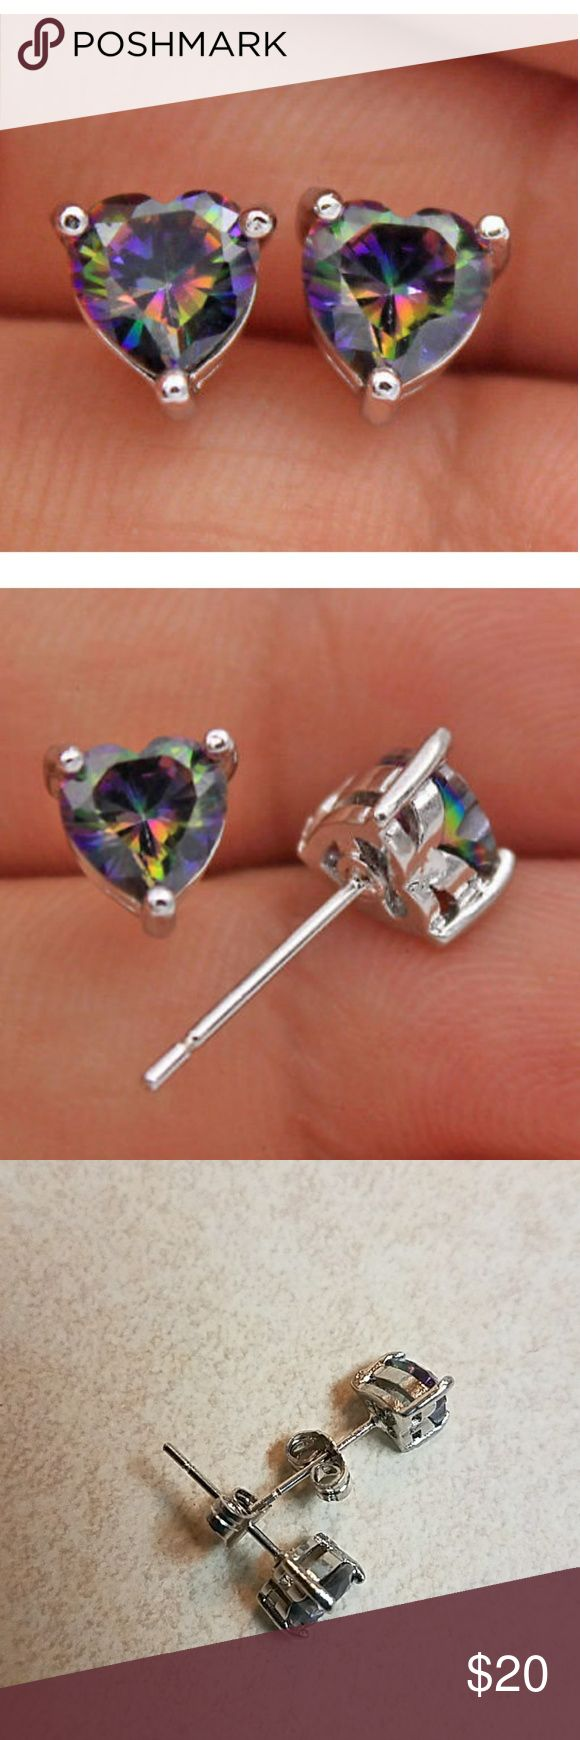 Mystic Rainbow topaz earrings Stunning lab created rainbow topaz 18k white gold filled  6mm Pierced  Brand new untagged  PERFECT MATCH WITH RAINBOW TOPAZ RING Perfect for Christmas Jewelry Earrings